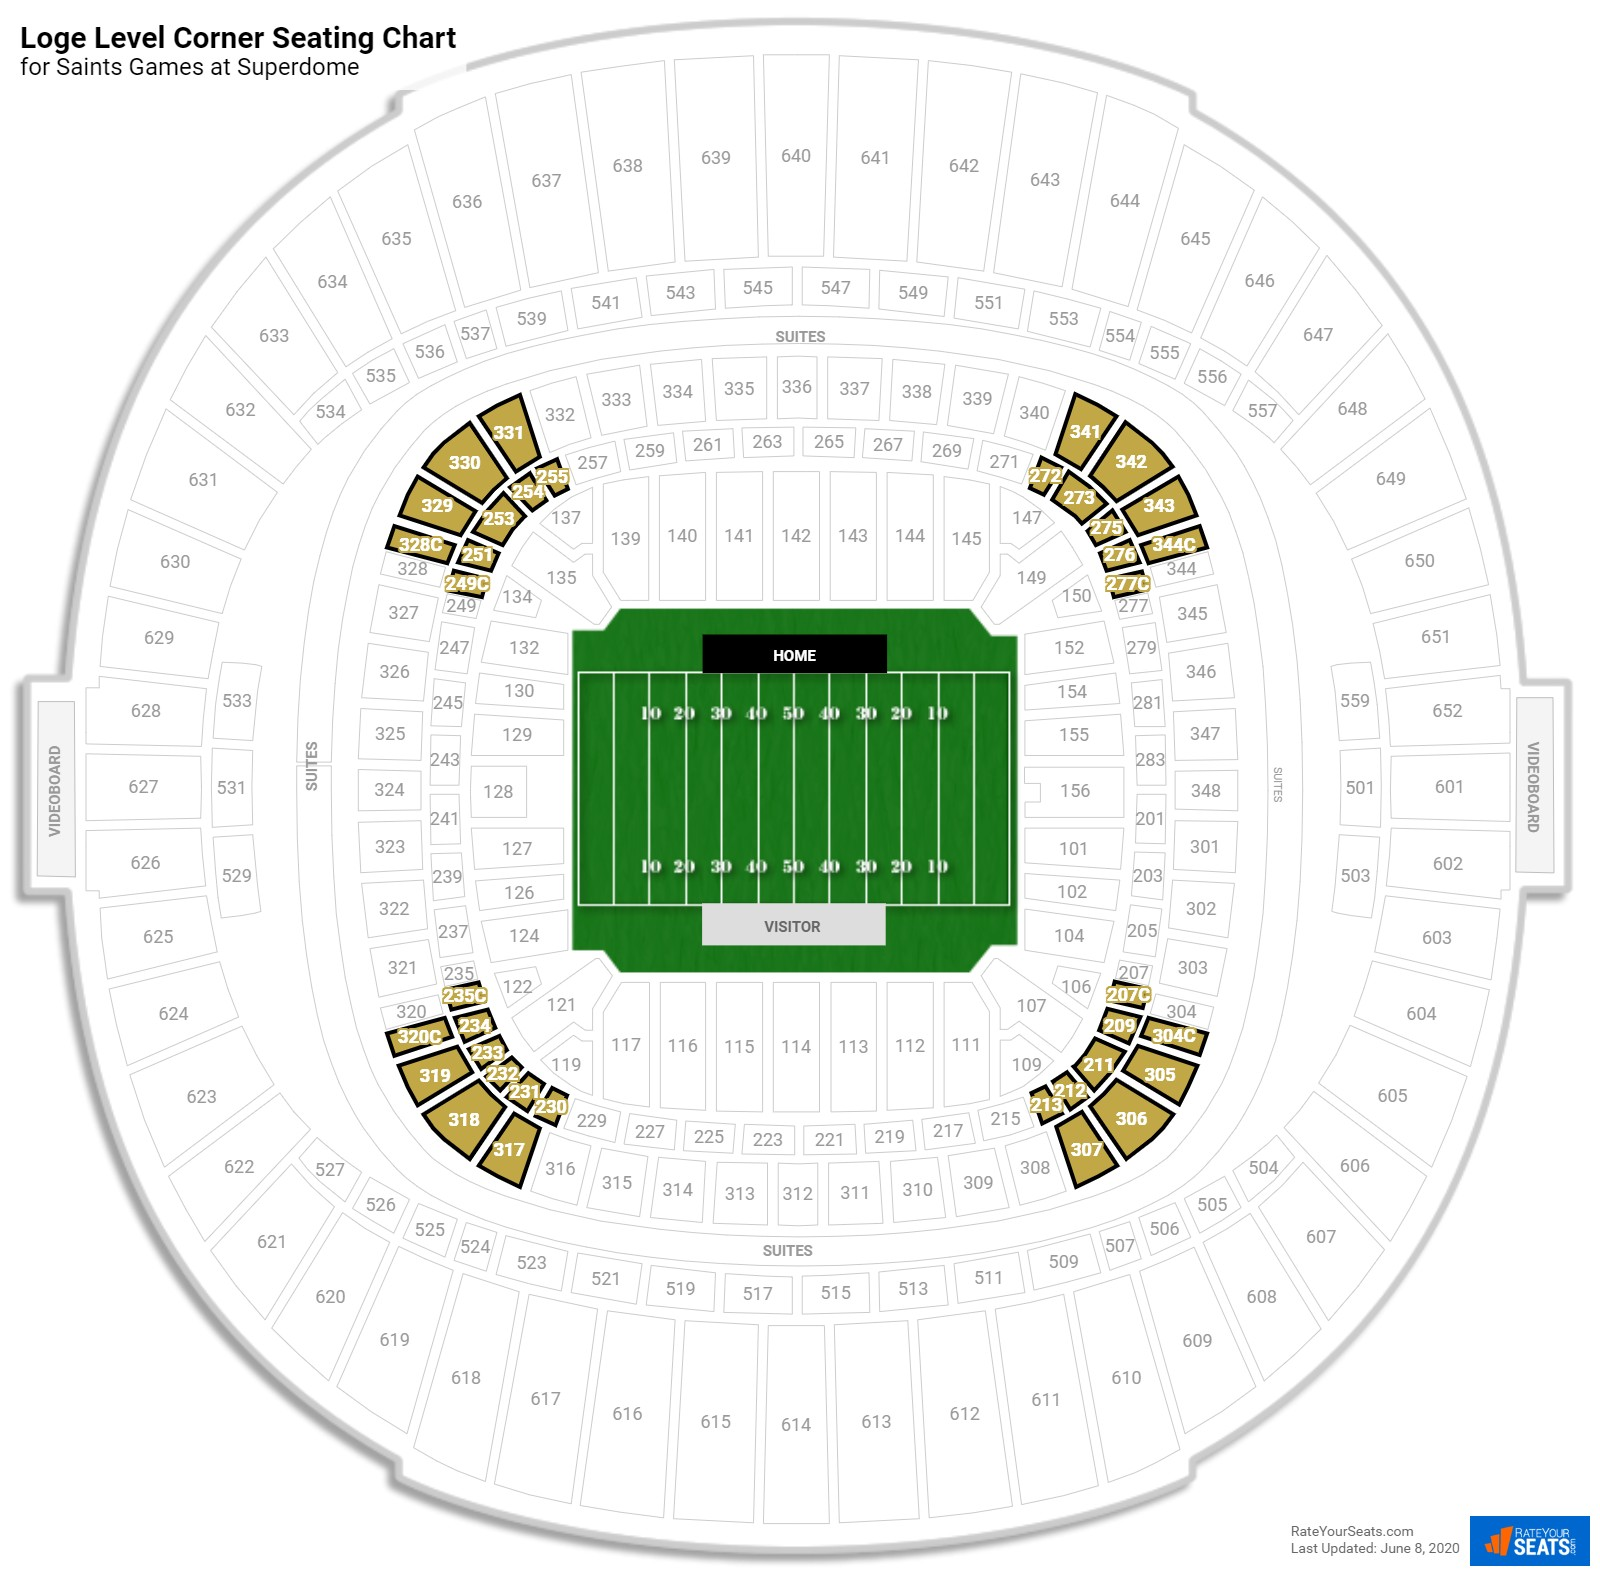 Superdome Loge Level Corner seating chart